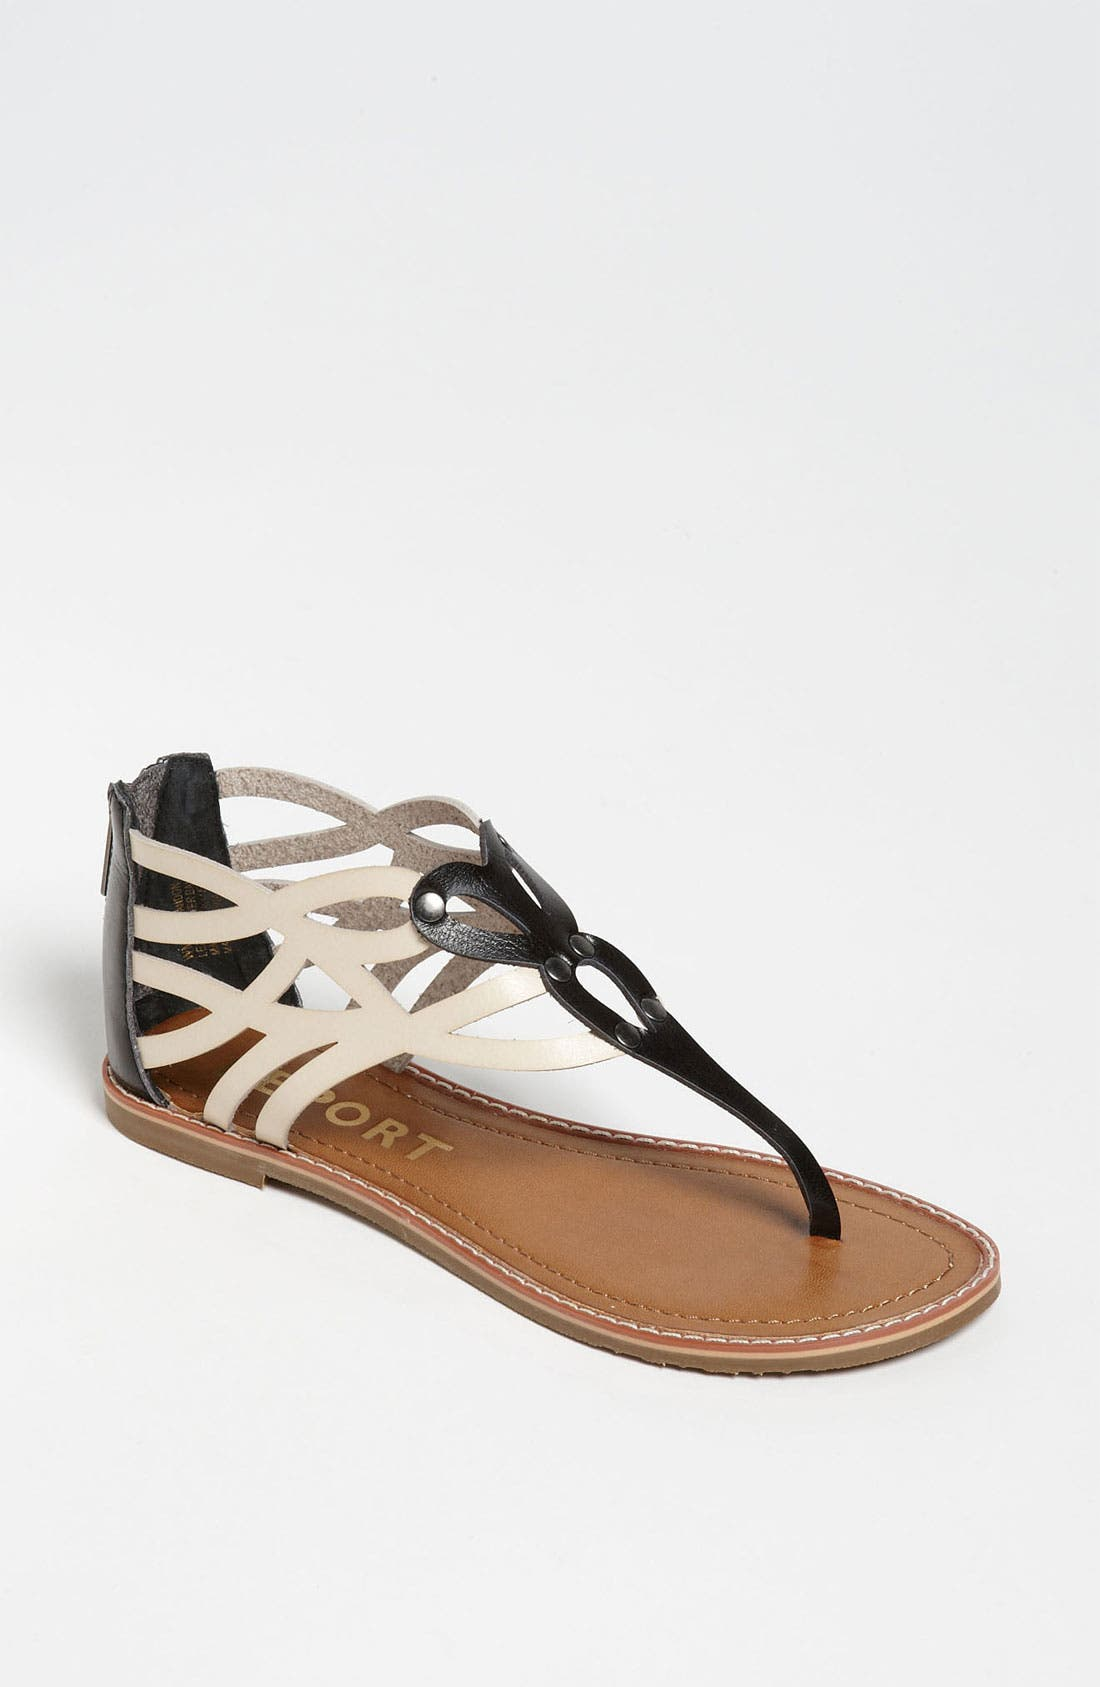 Main Image - REPORT 'Landon' Sandal